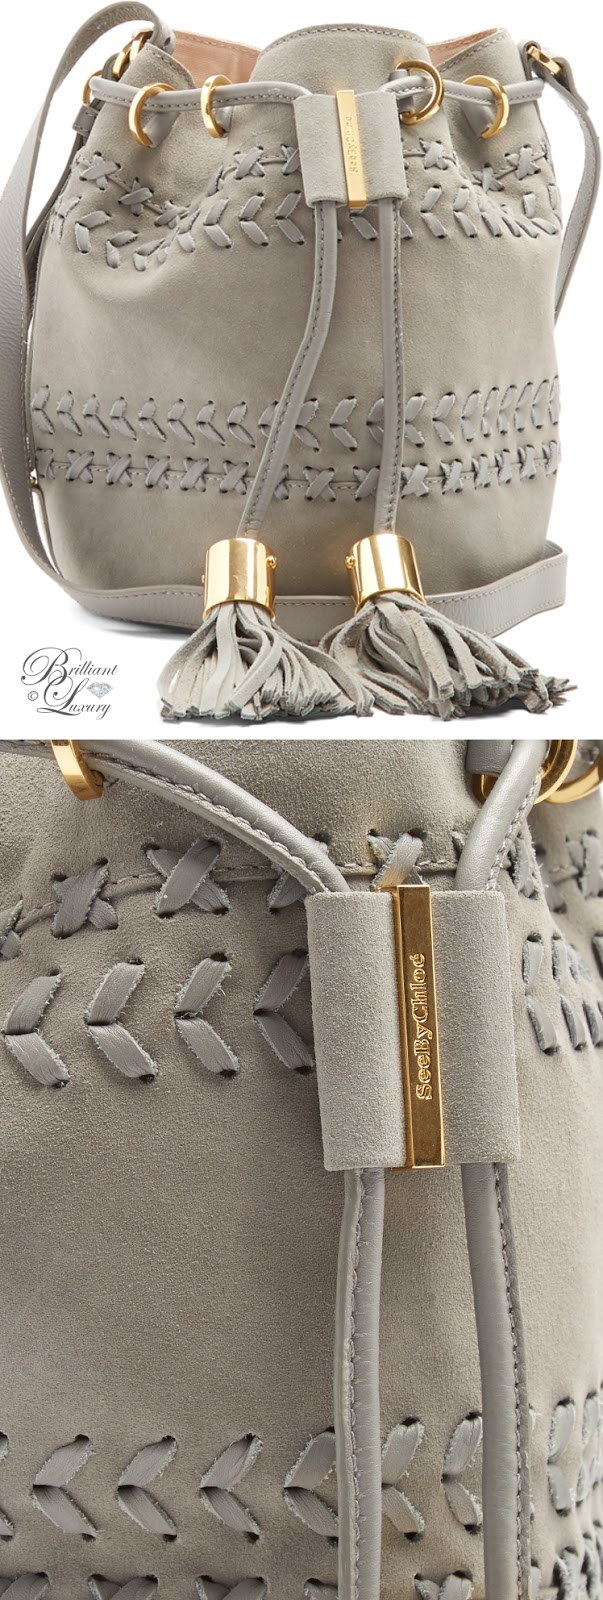 Brilliant Luxury ♦ Chloé Vicki small suede and leather bucket bag